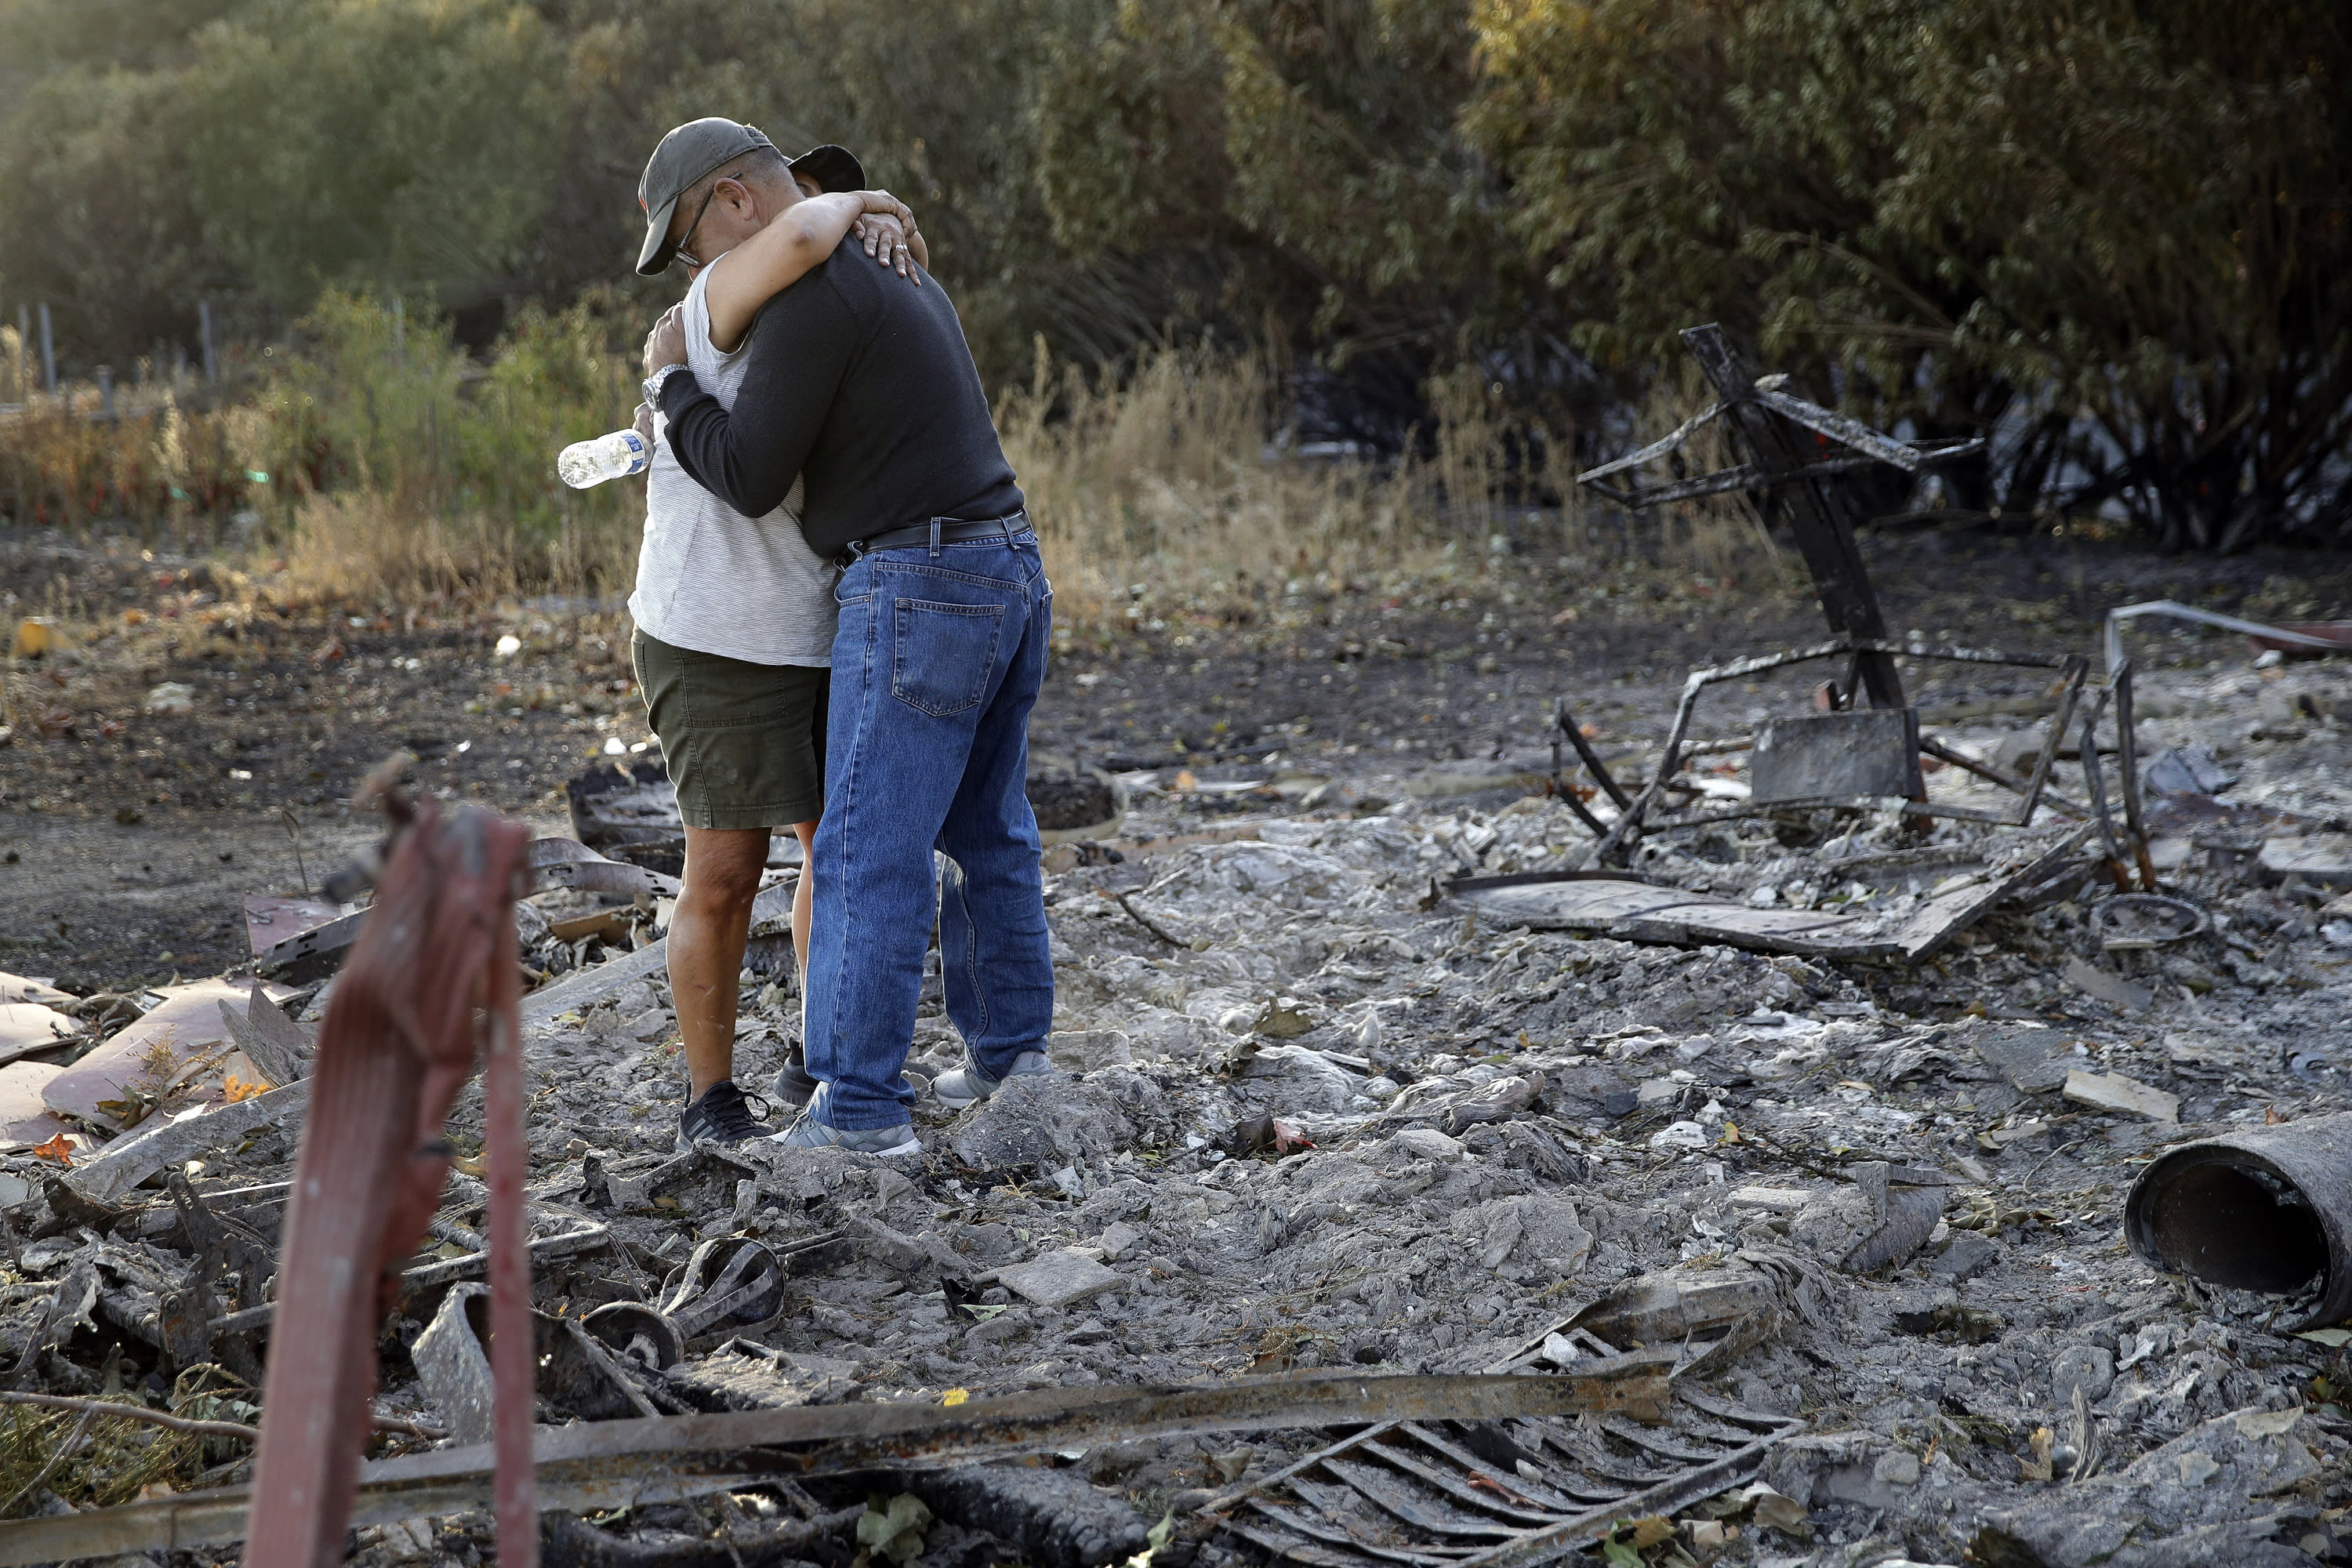 FILE - In this Oct. 31, 2019, file photo, Justo and Bernadette Laos hug while looking through the charred remains of the home they rented that was destroyed by the Kincade Fire near Geyserville, Calif. Fire officials say Pacific Gas & Electric transmission lines sparked a wildfire last year in Northern California that destroyed hundreds of homes and led to the evacuation of nearly 100,000 people. The California Department of Forestry and Fire Protection issued the finding Thursday, July 16, 2020. (AP Photo/Charlie Riedel, File)